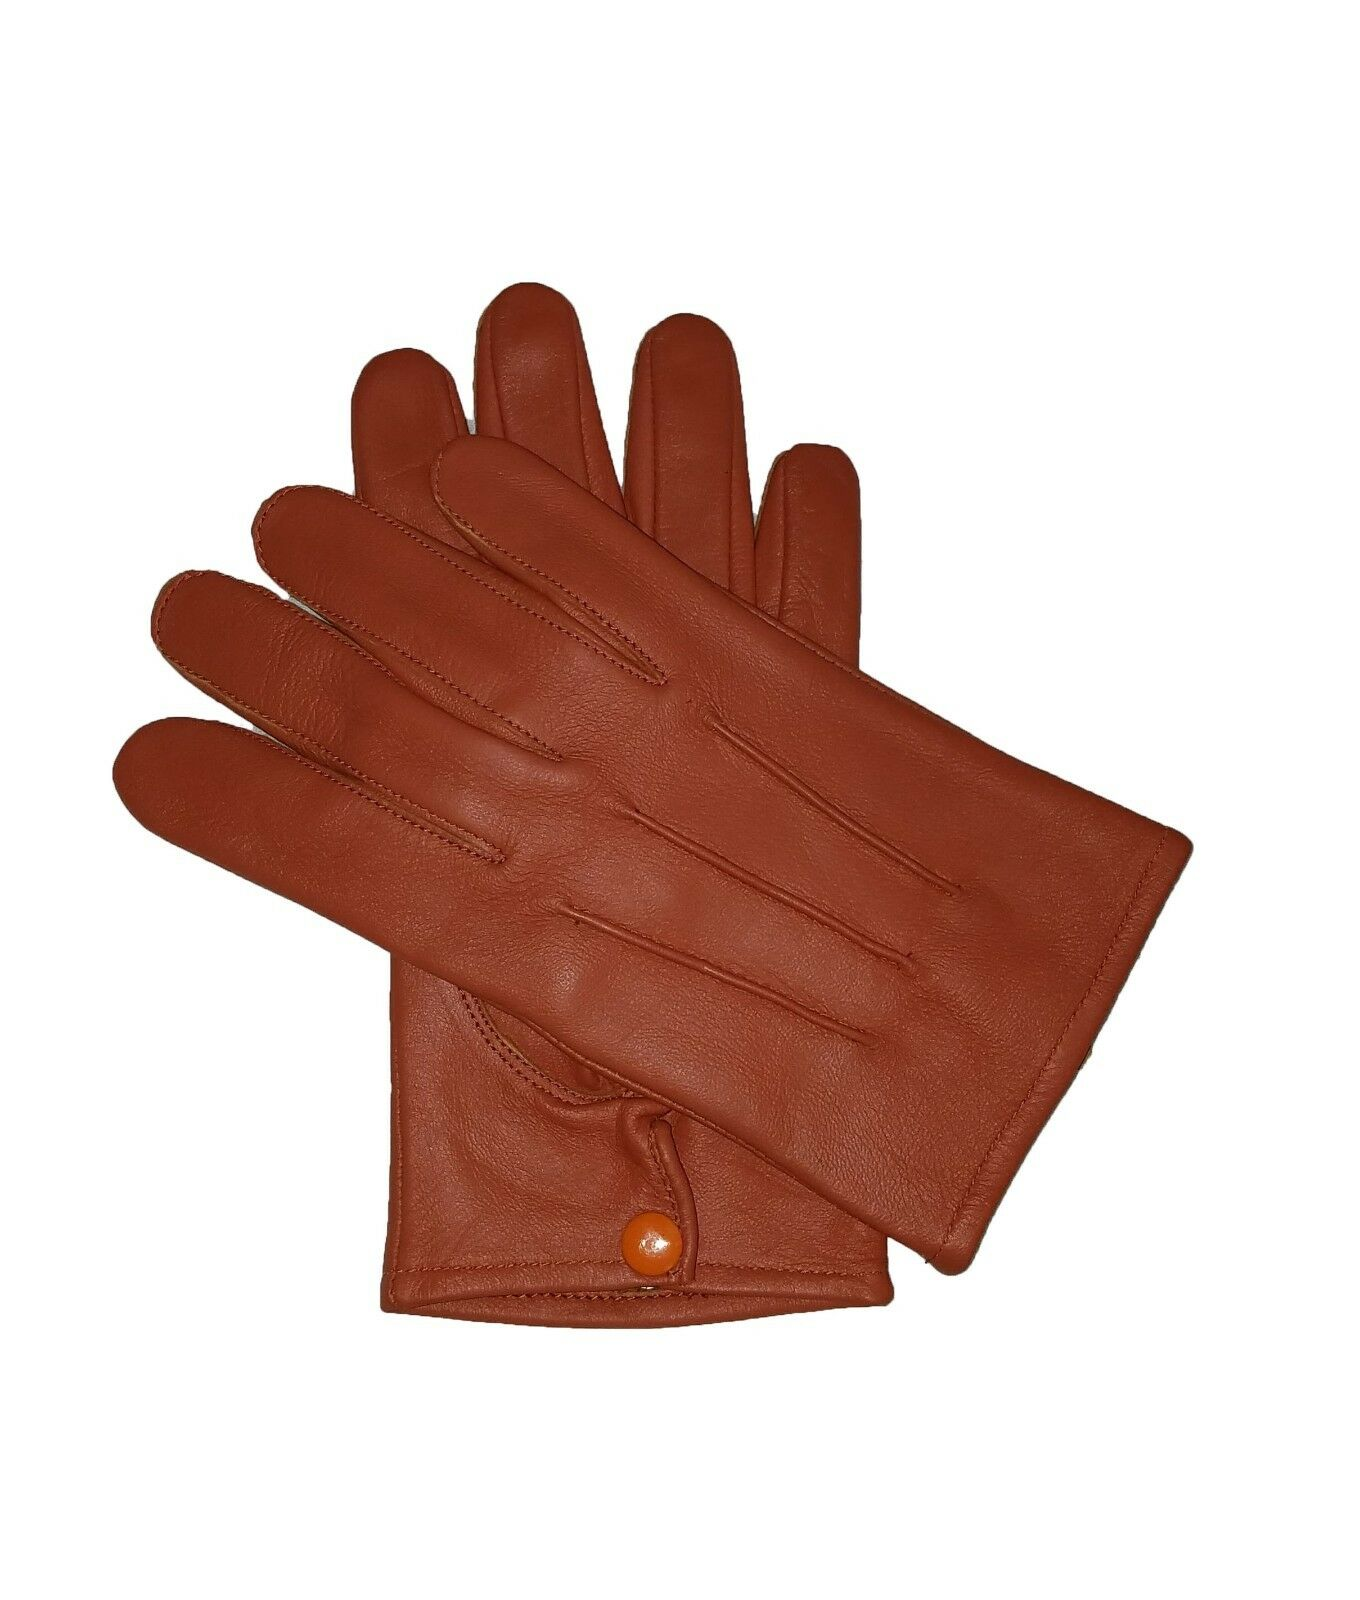 Men's genuine leather Unlined driving gloves